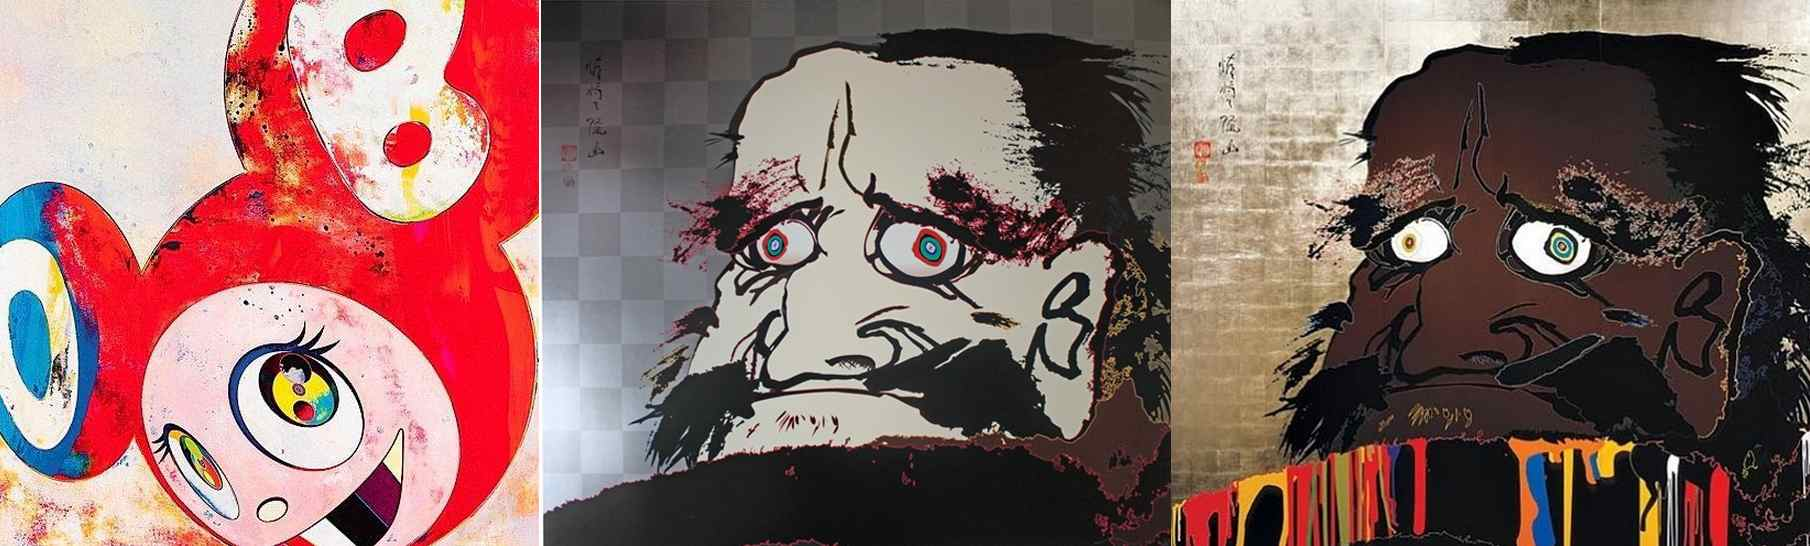 Takashi Murakami-And then (Red and Blue), That I May Time Transcend That A Universe My Heart May Unfold, And I Open Wide My Eyes But See No Scenery I Fix My Gaze Upon My Heart-1996